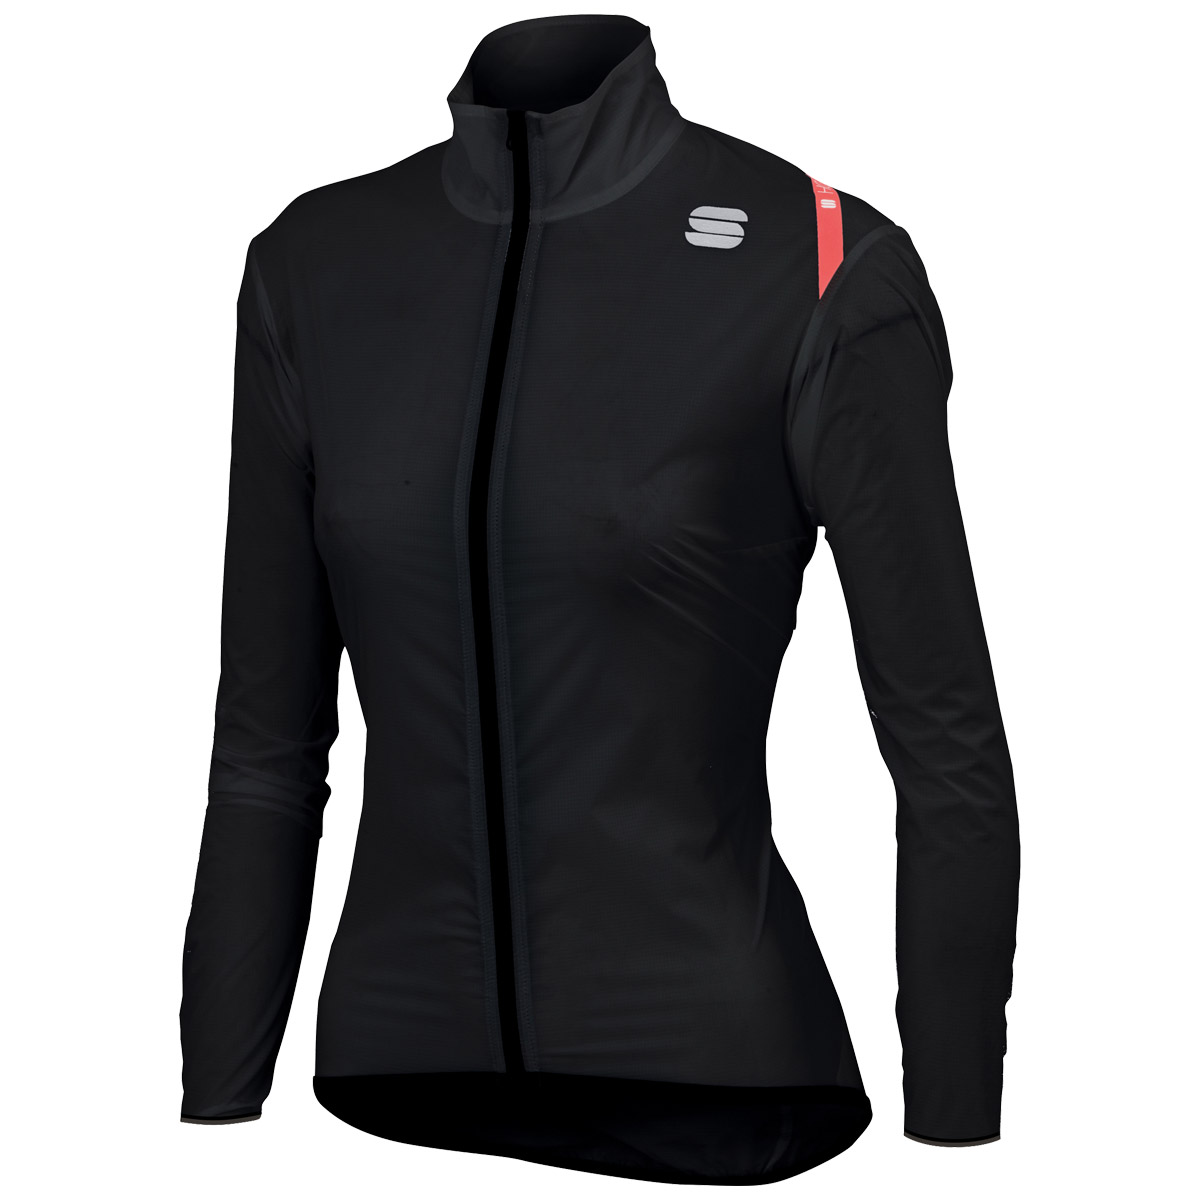 Sportful Hot Pack 6 Frau Windjacke - Schwarz